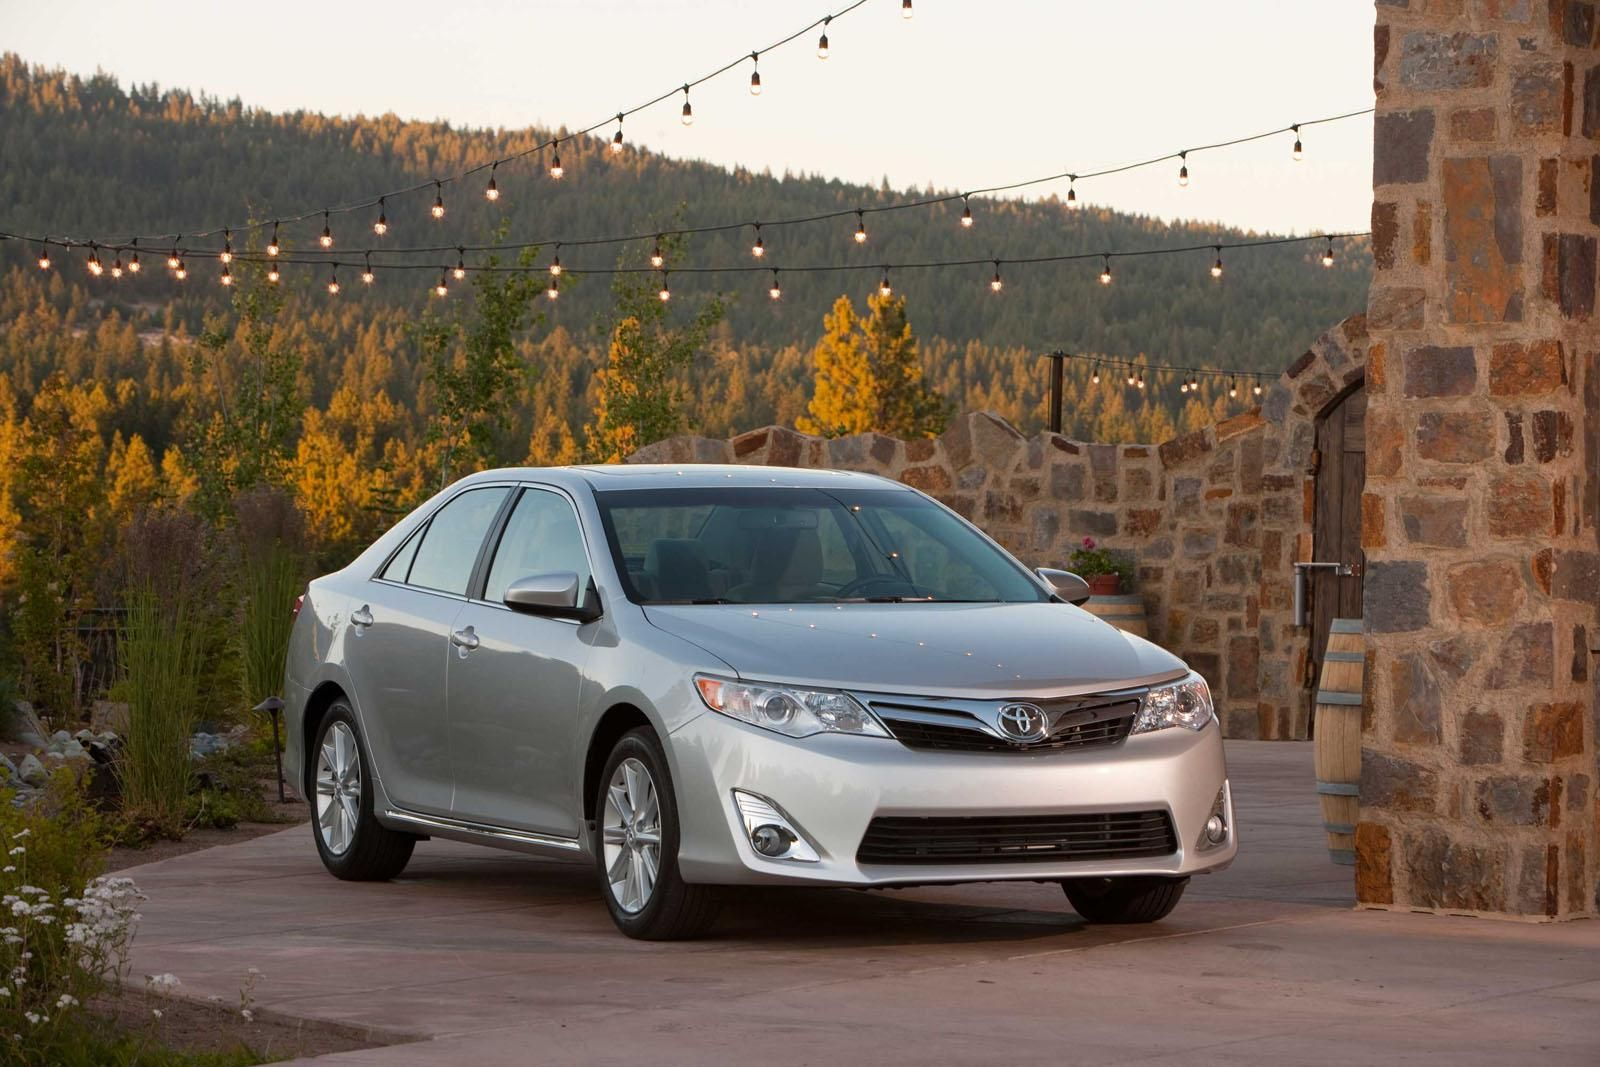 2013 toyota camry with tinted windows things i love pinterest toyota camry and toyota